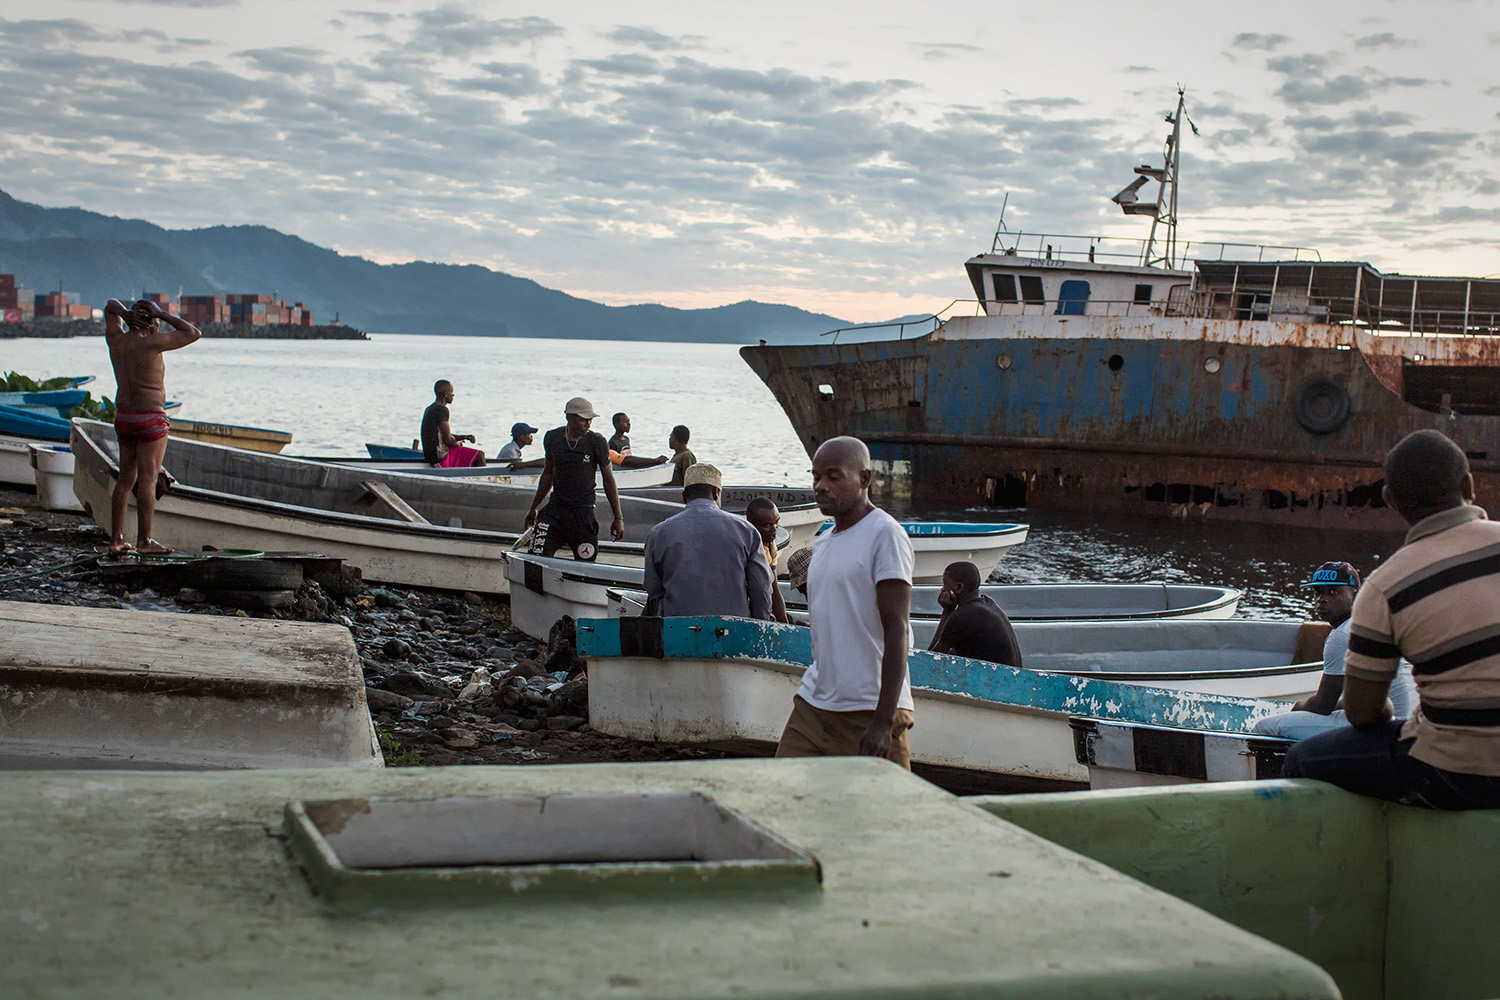 Fishermen on the coast of Anjouan Island on Wednesday, June 17, 2015. Mayotte is the only island of the Union of the Comoros that voted against independence in 1974. The island is admintrated by France and becomes a french department in 2011. Since 1993, the Comorians from Grande Comore, Moheli, and Anjouan must have a visa to visit Mayotte.